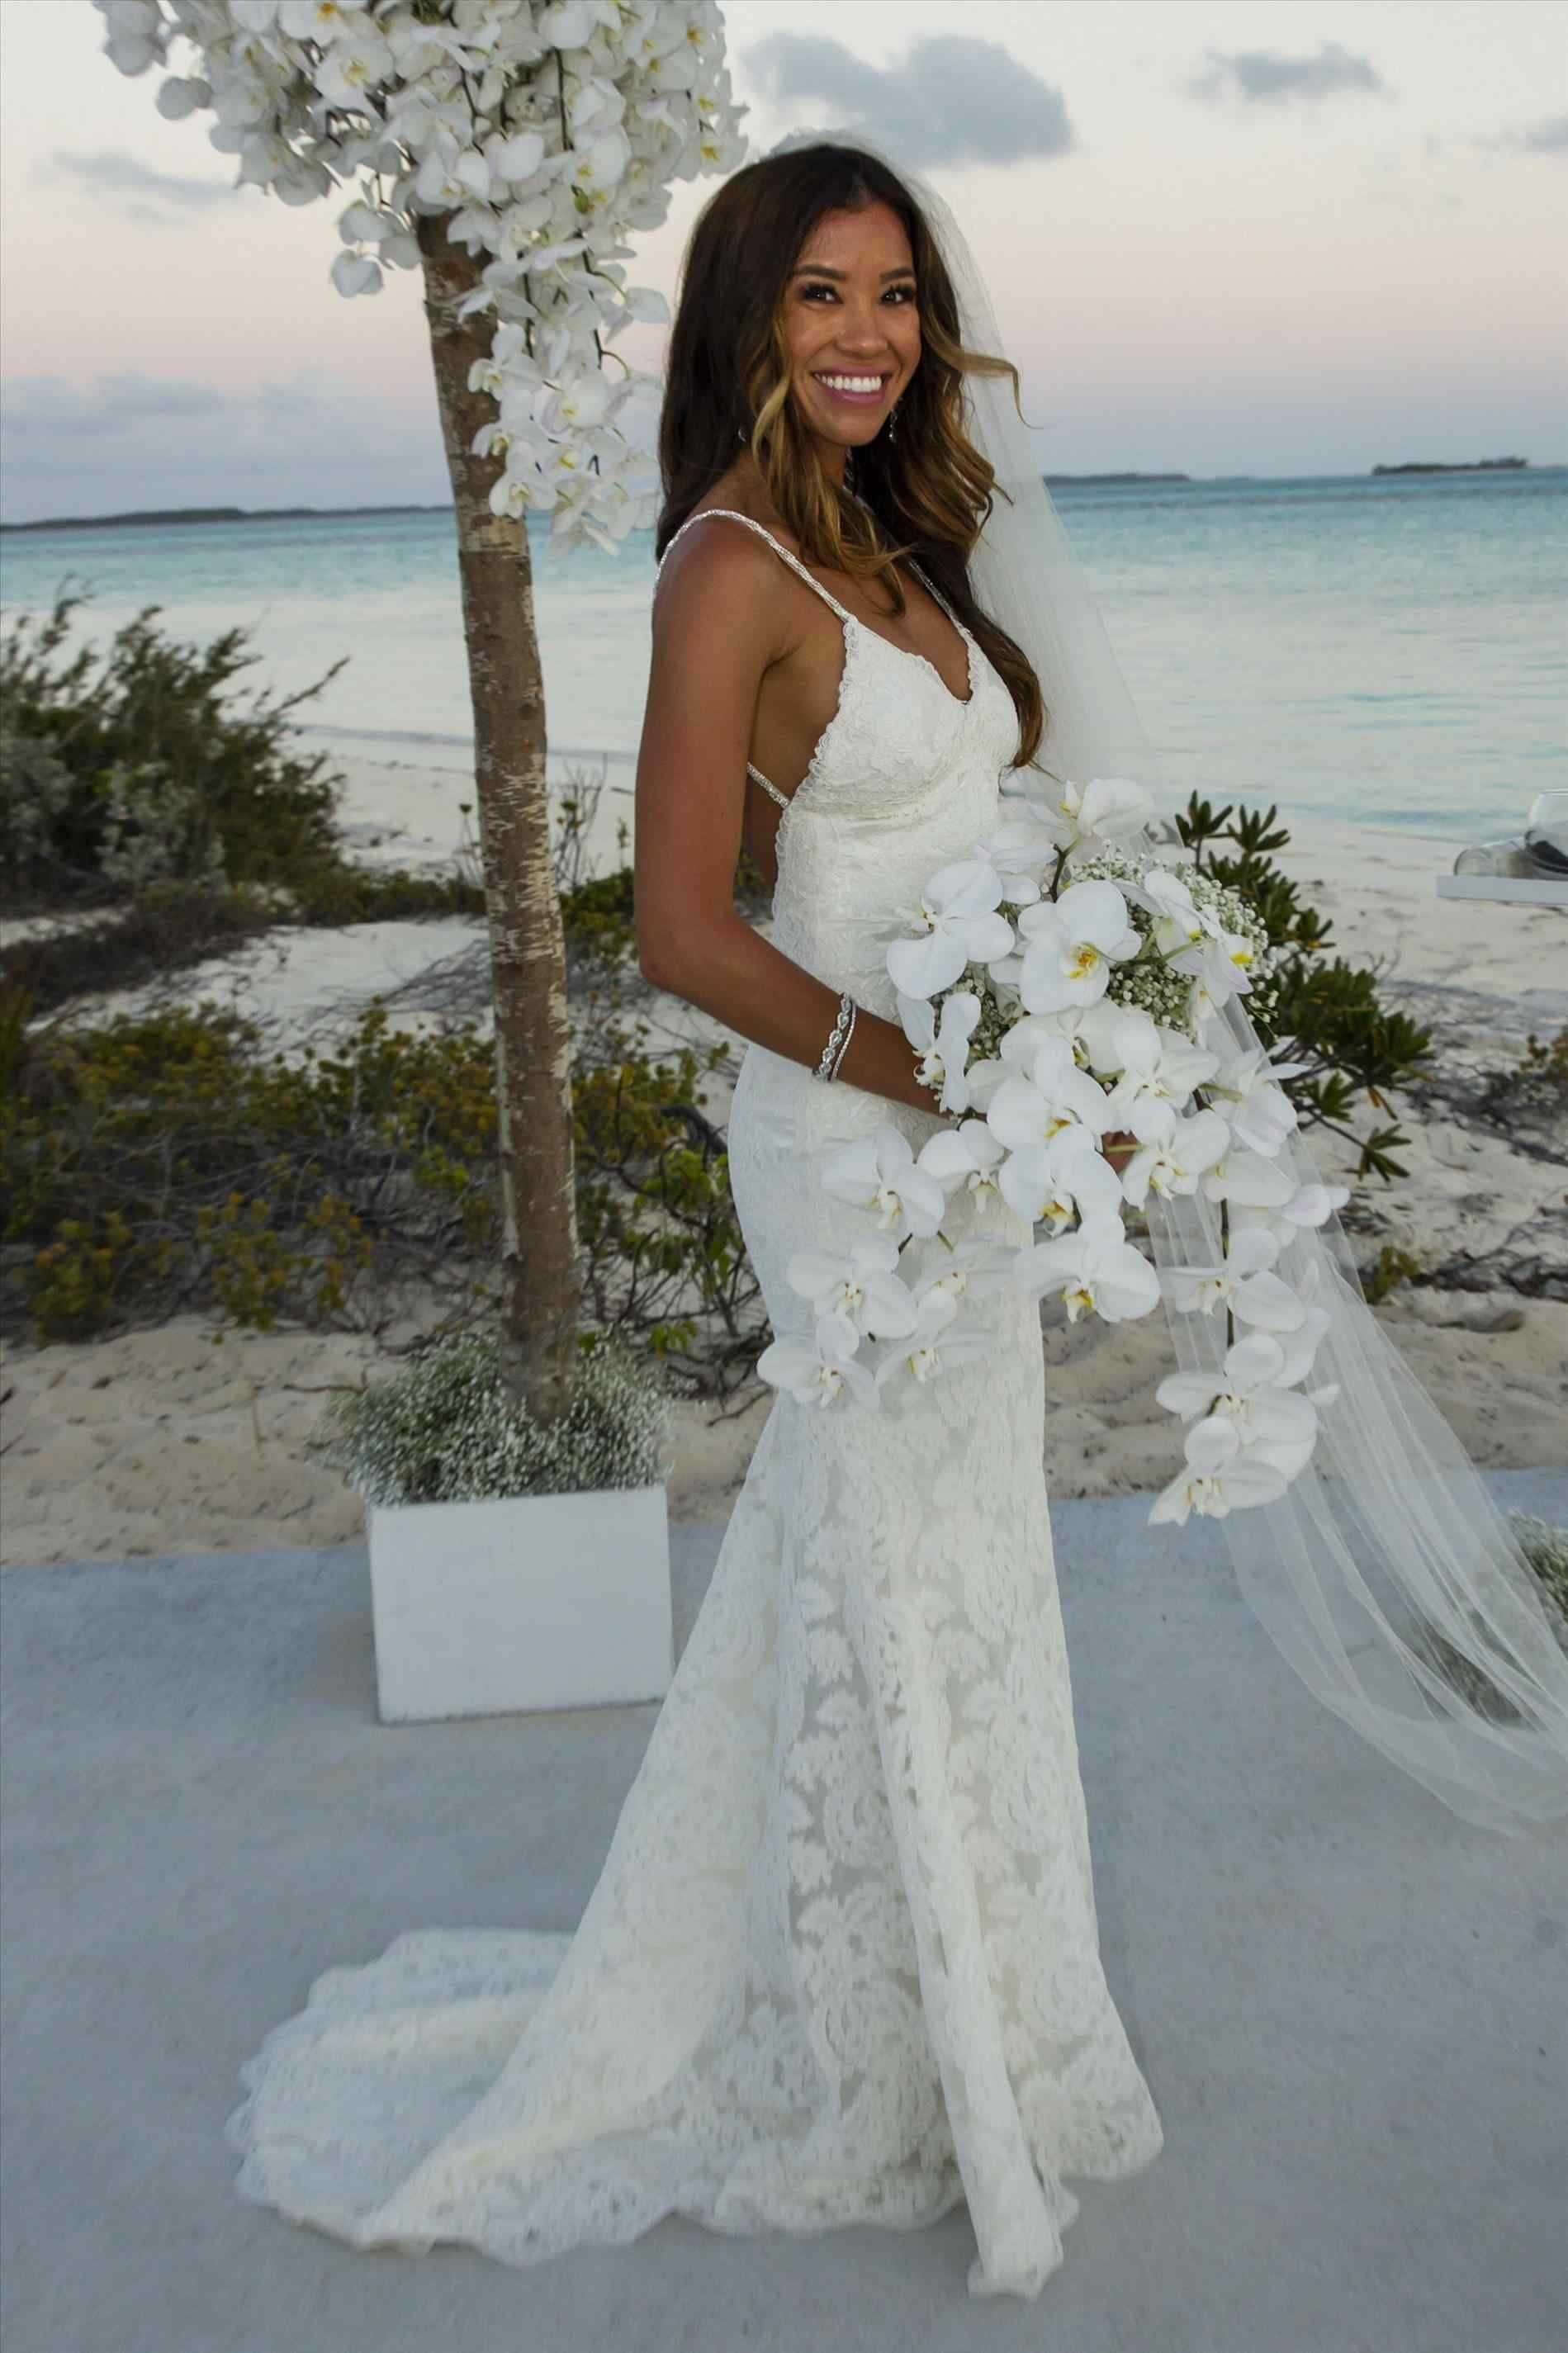 Dresses for guests at a beach wedding  Luxury Beach Wedding Dresses for Older Guests  Pinterest  Beach